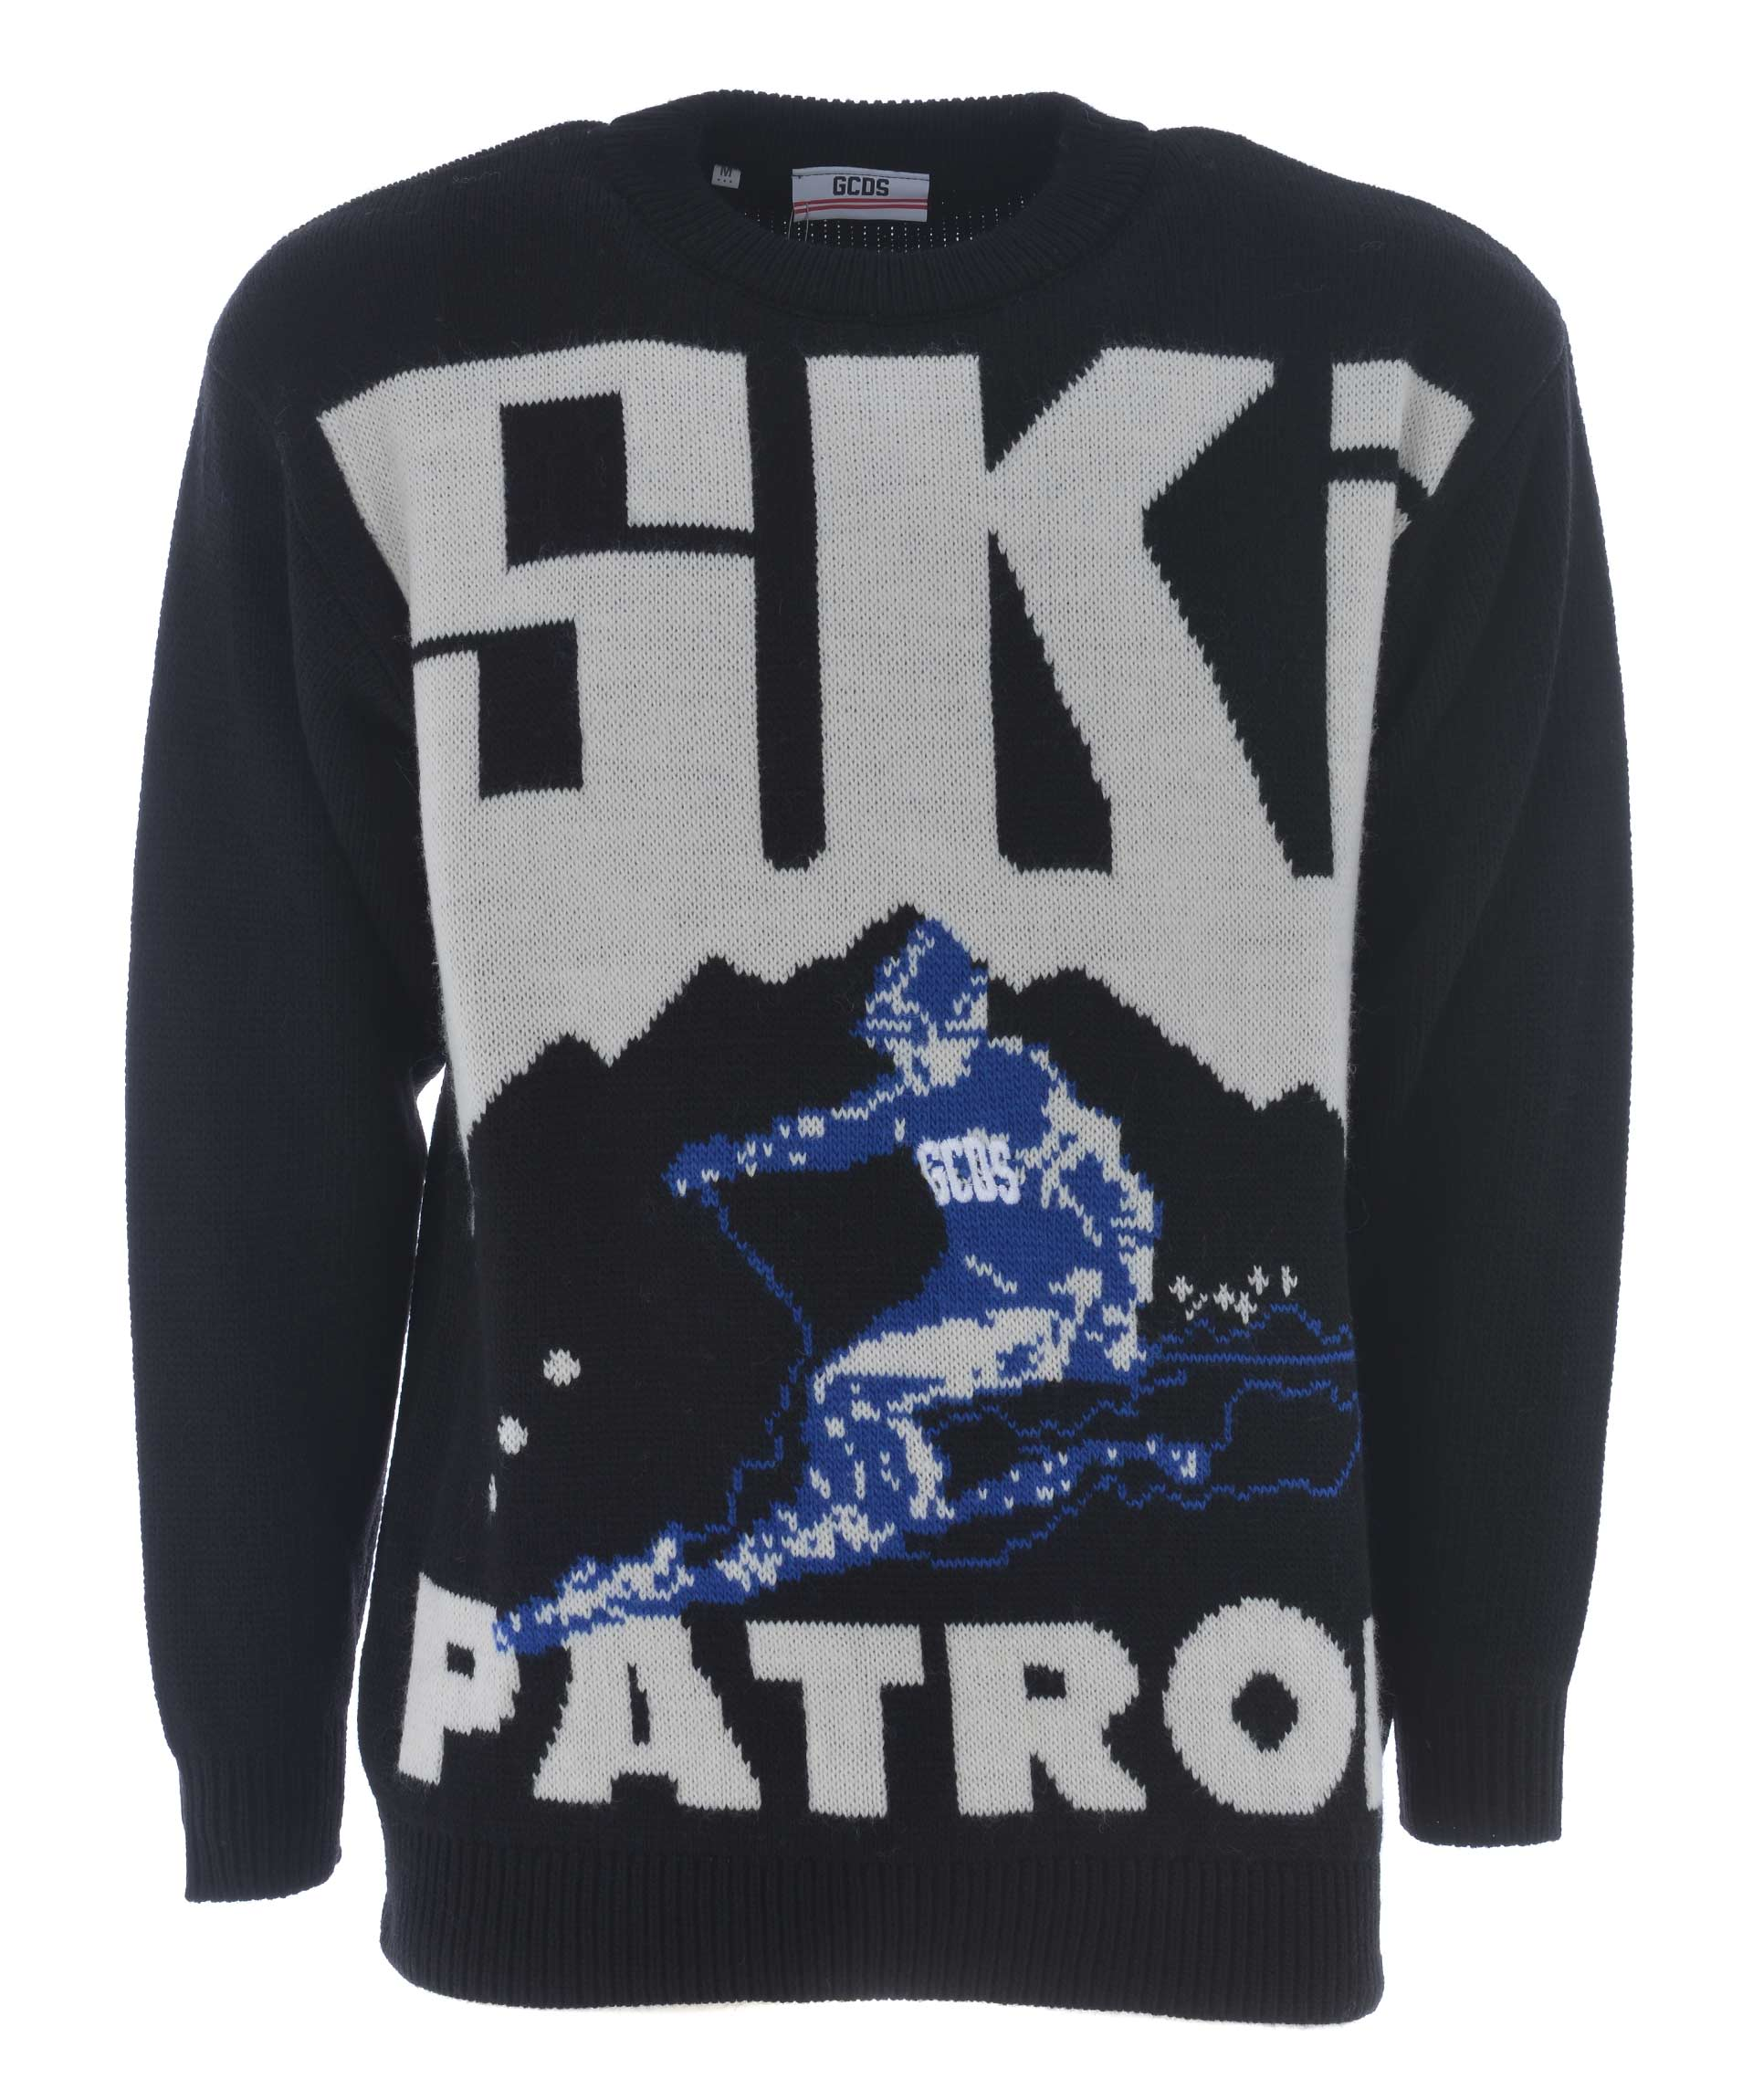 Gcds Ski Patterned Jumper